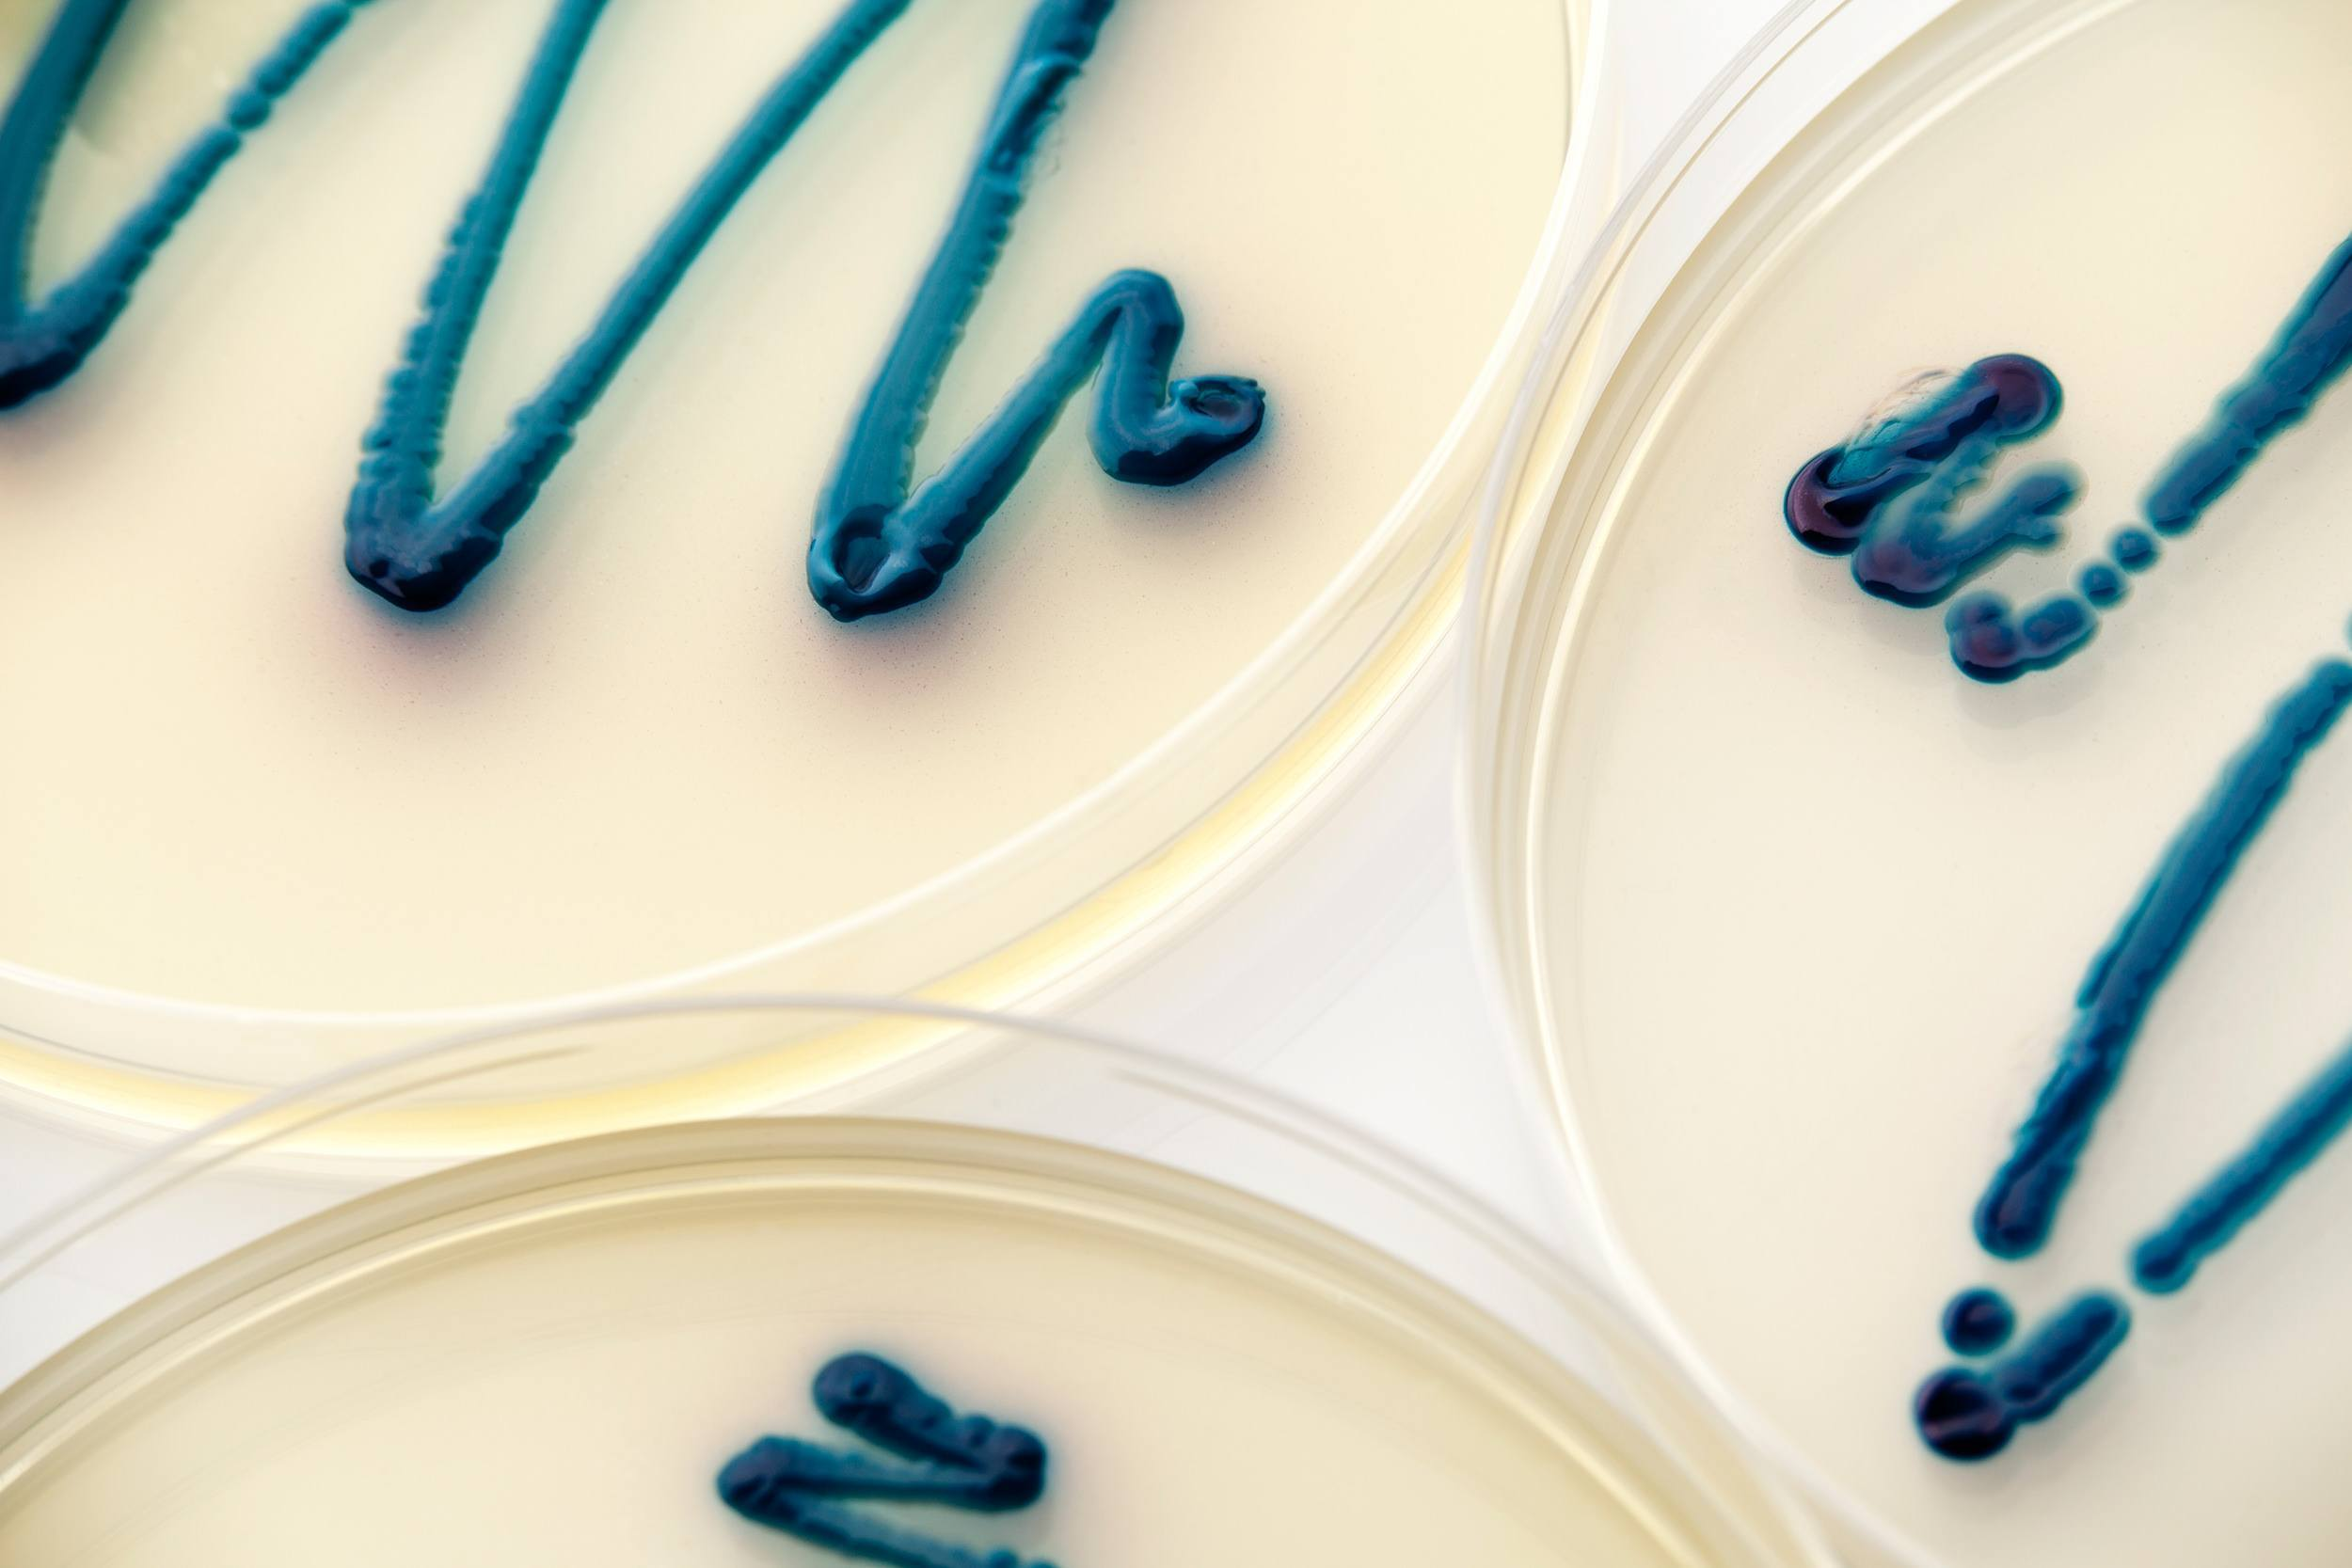 How To Use Next Generation Sequencing Ngs In Microbial Diagnostics Using Sequencers Plcsnet Interactive Q A